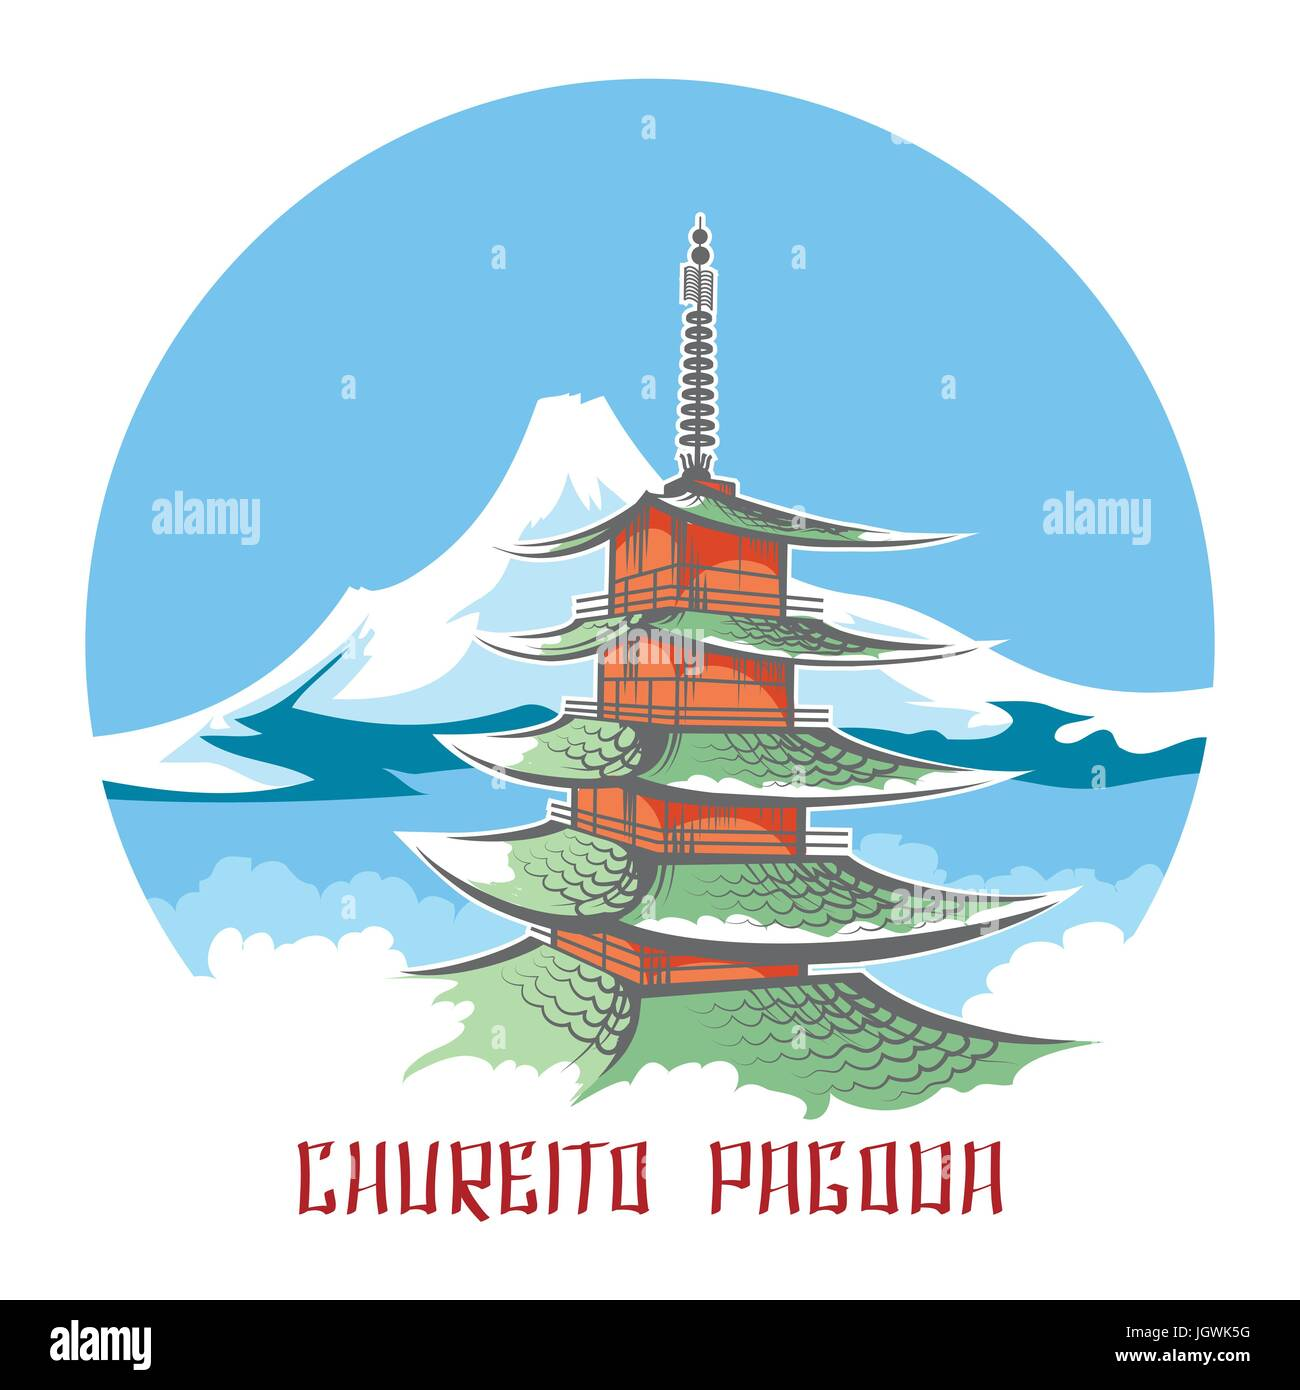 Chureito pagoda landscape vector japan emblem. Colored sketch of Fuji mountain panorama with pagoda temple - Stock Image